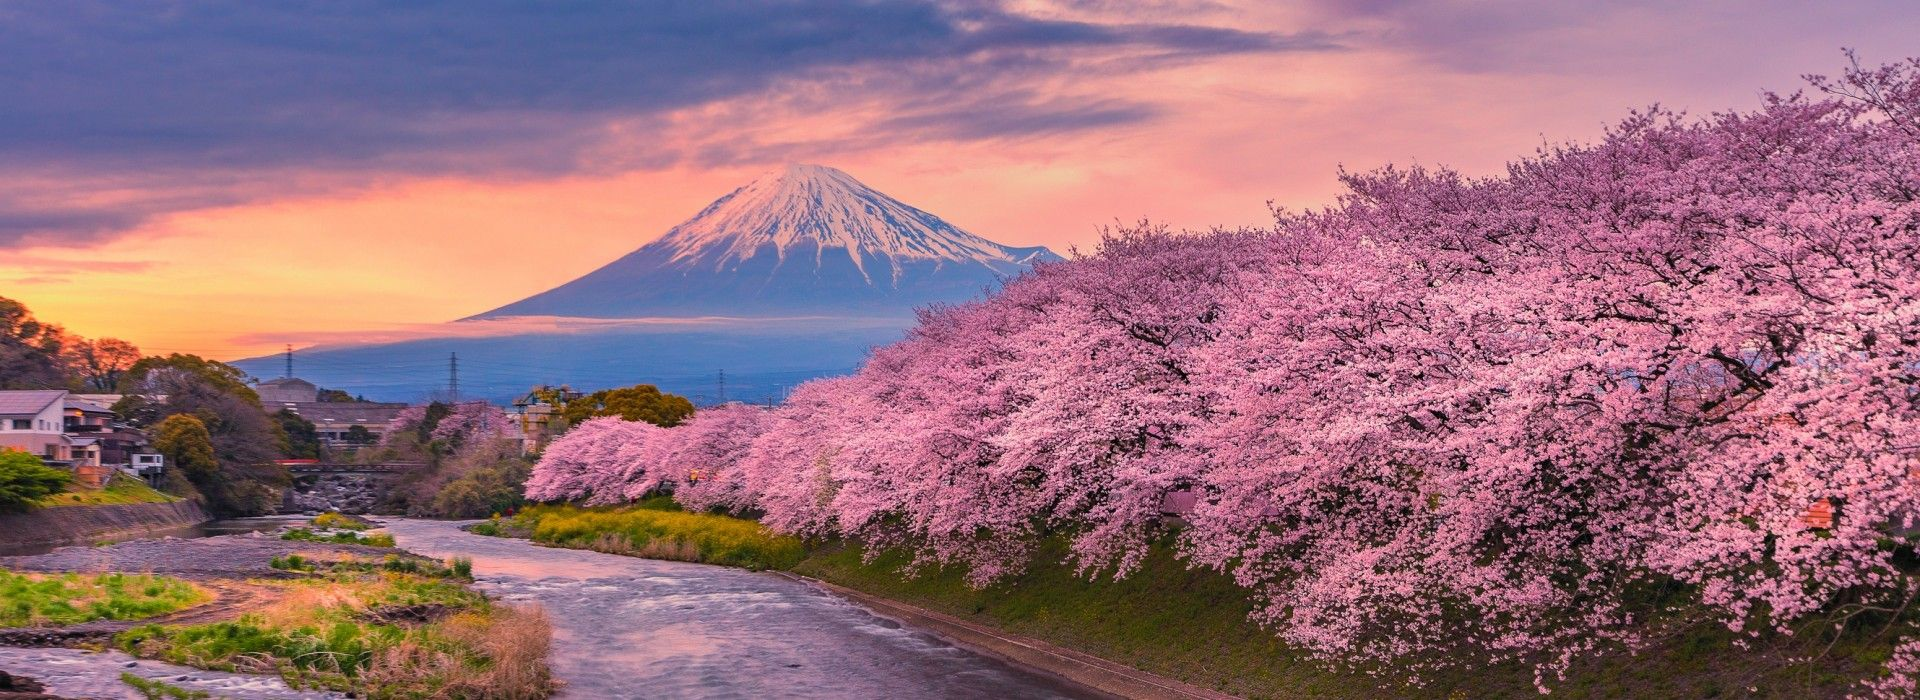 Cultural, religious and historic sites Tours in Japan